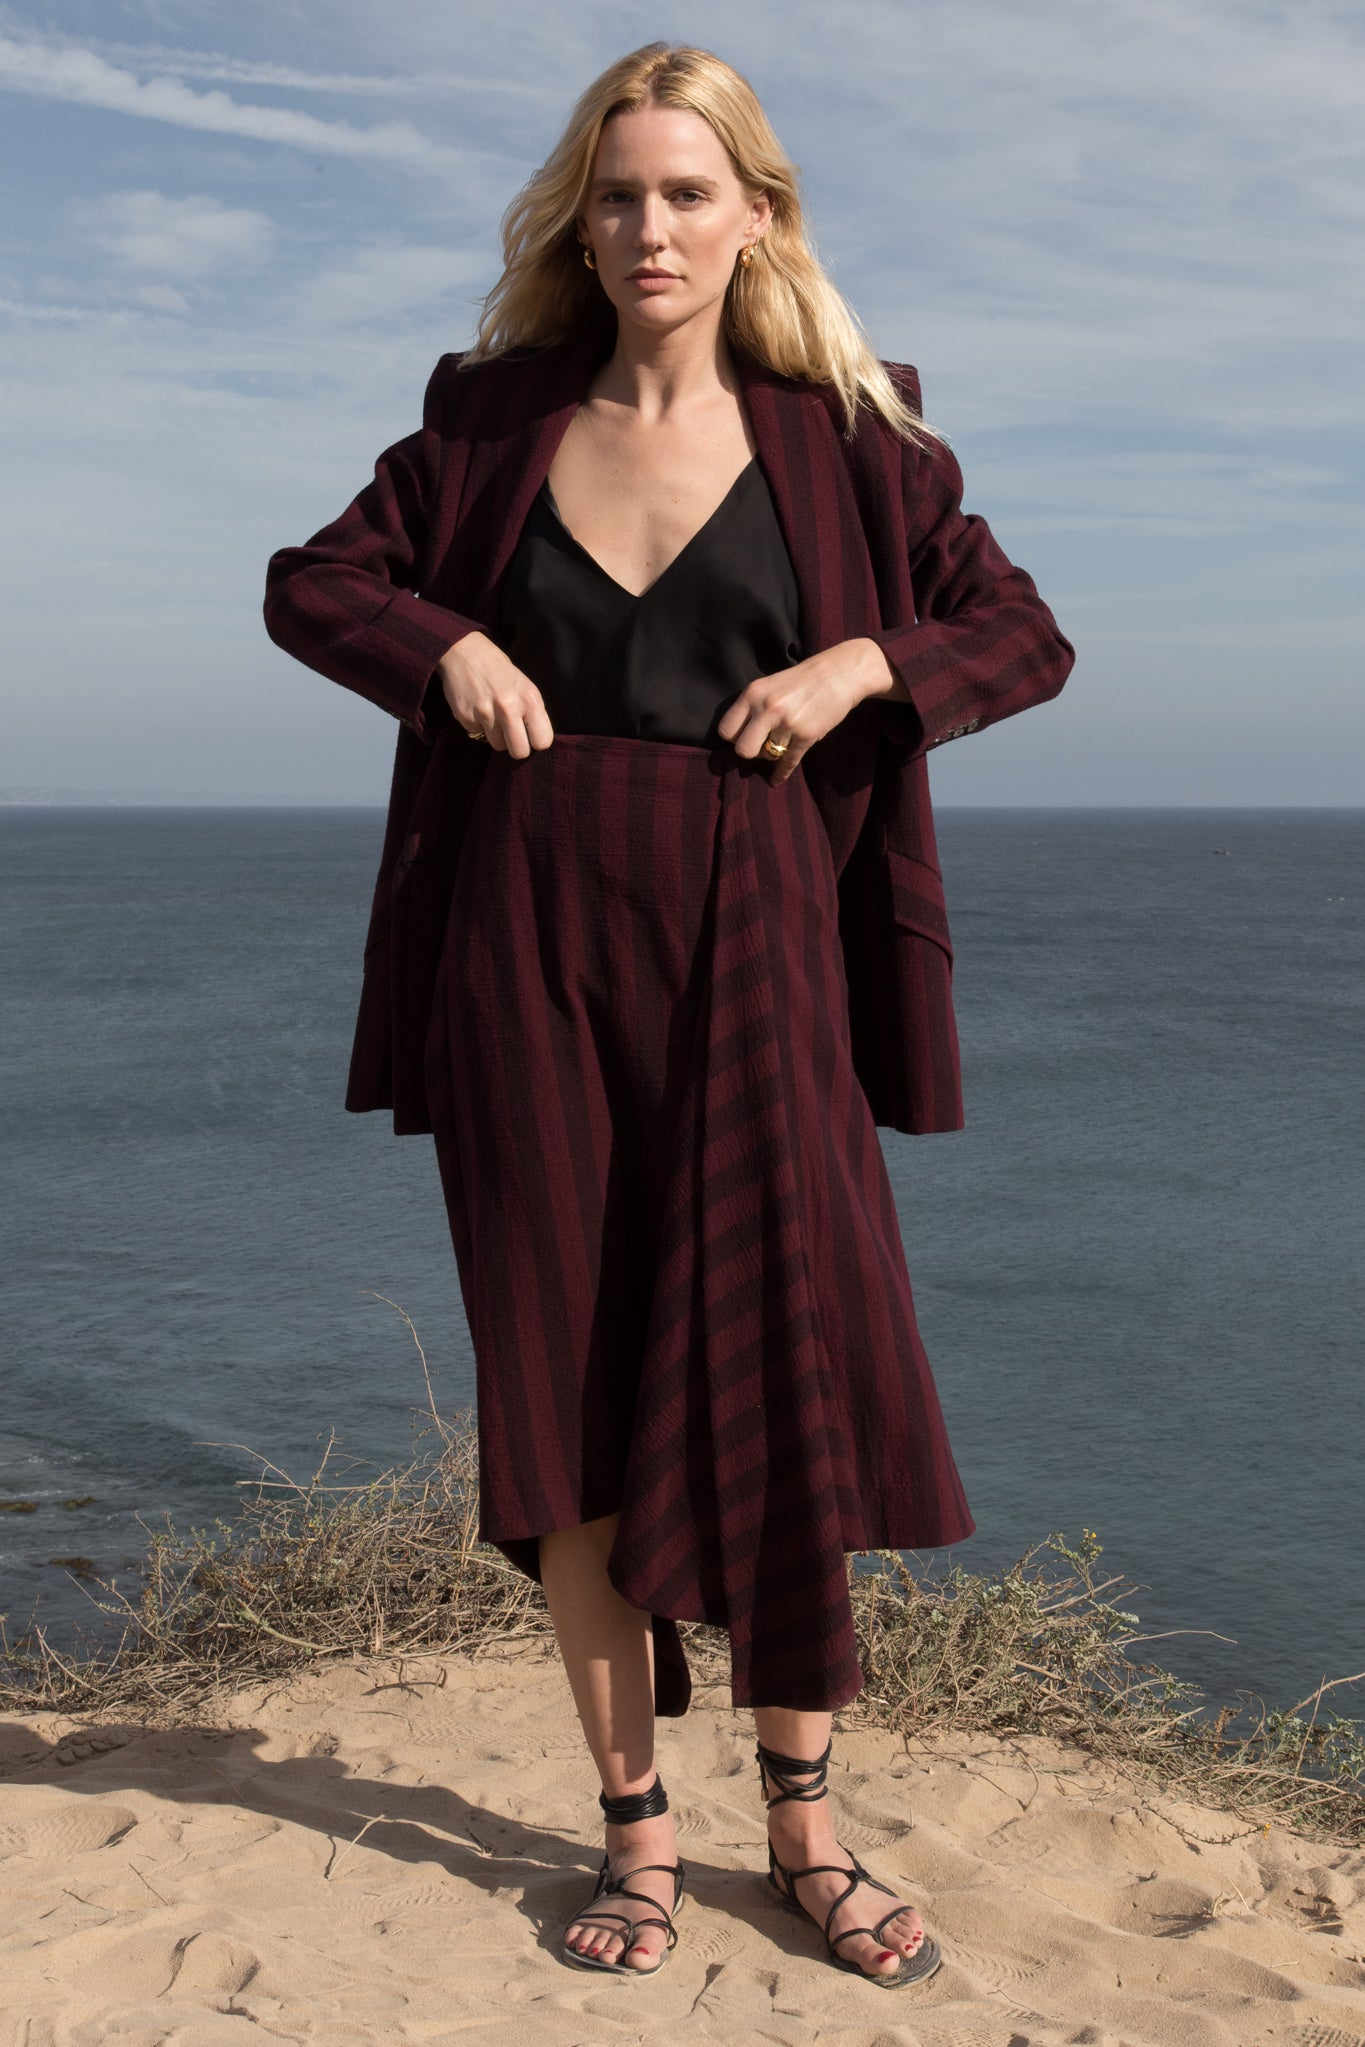 Model wears Size S JOSEPHINE SKIRT - BURGUNDY by Heidi Merrick made in Downtown Los Angeles